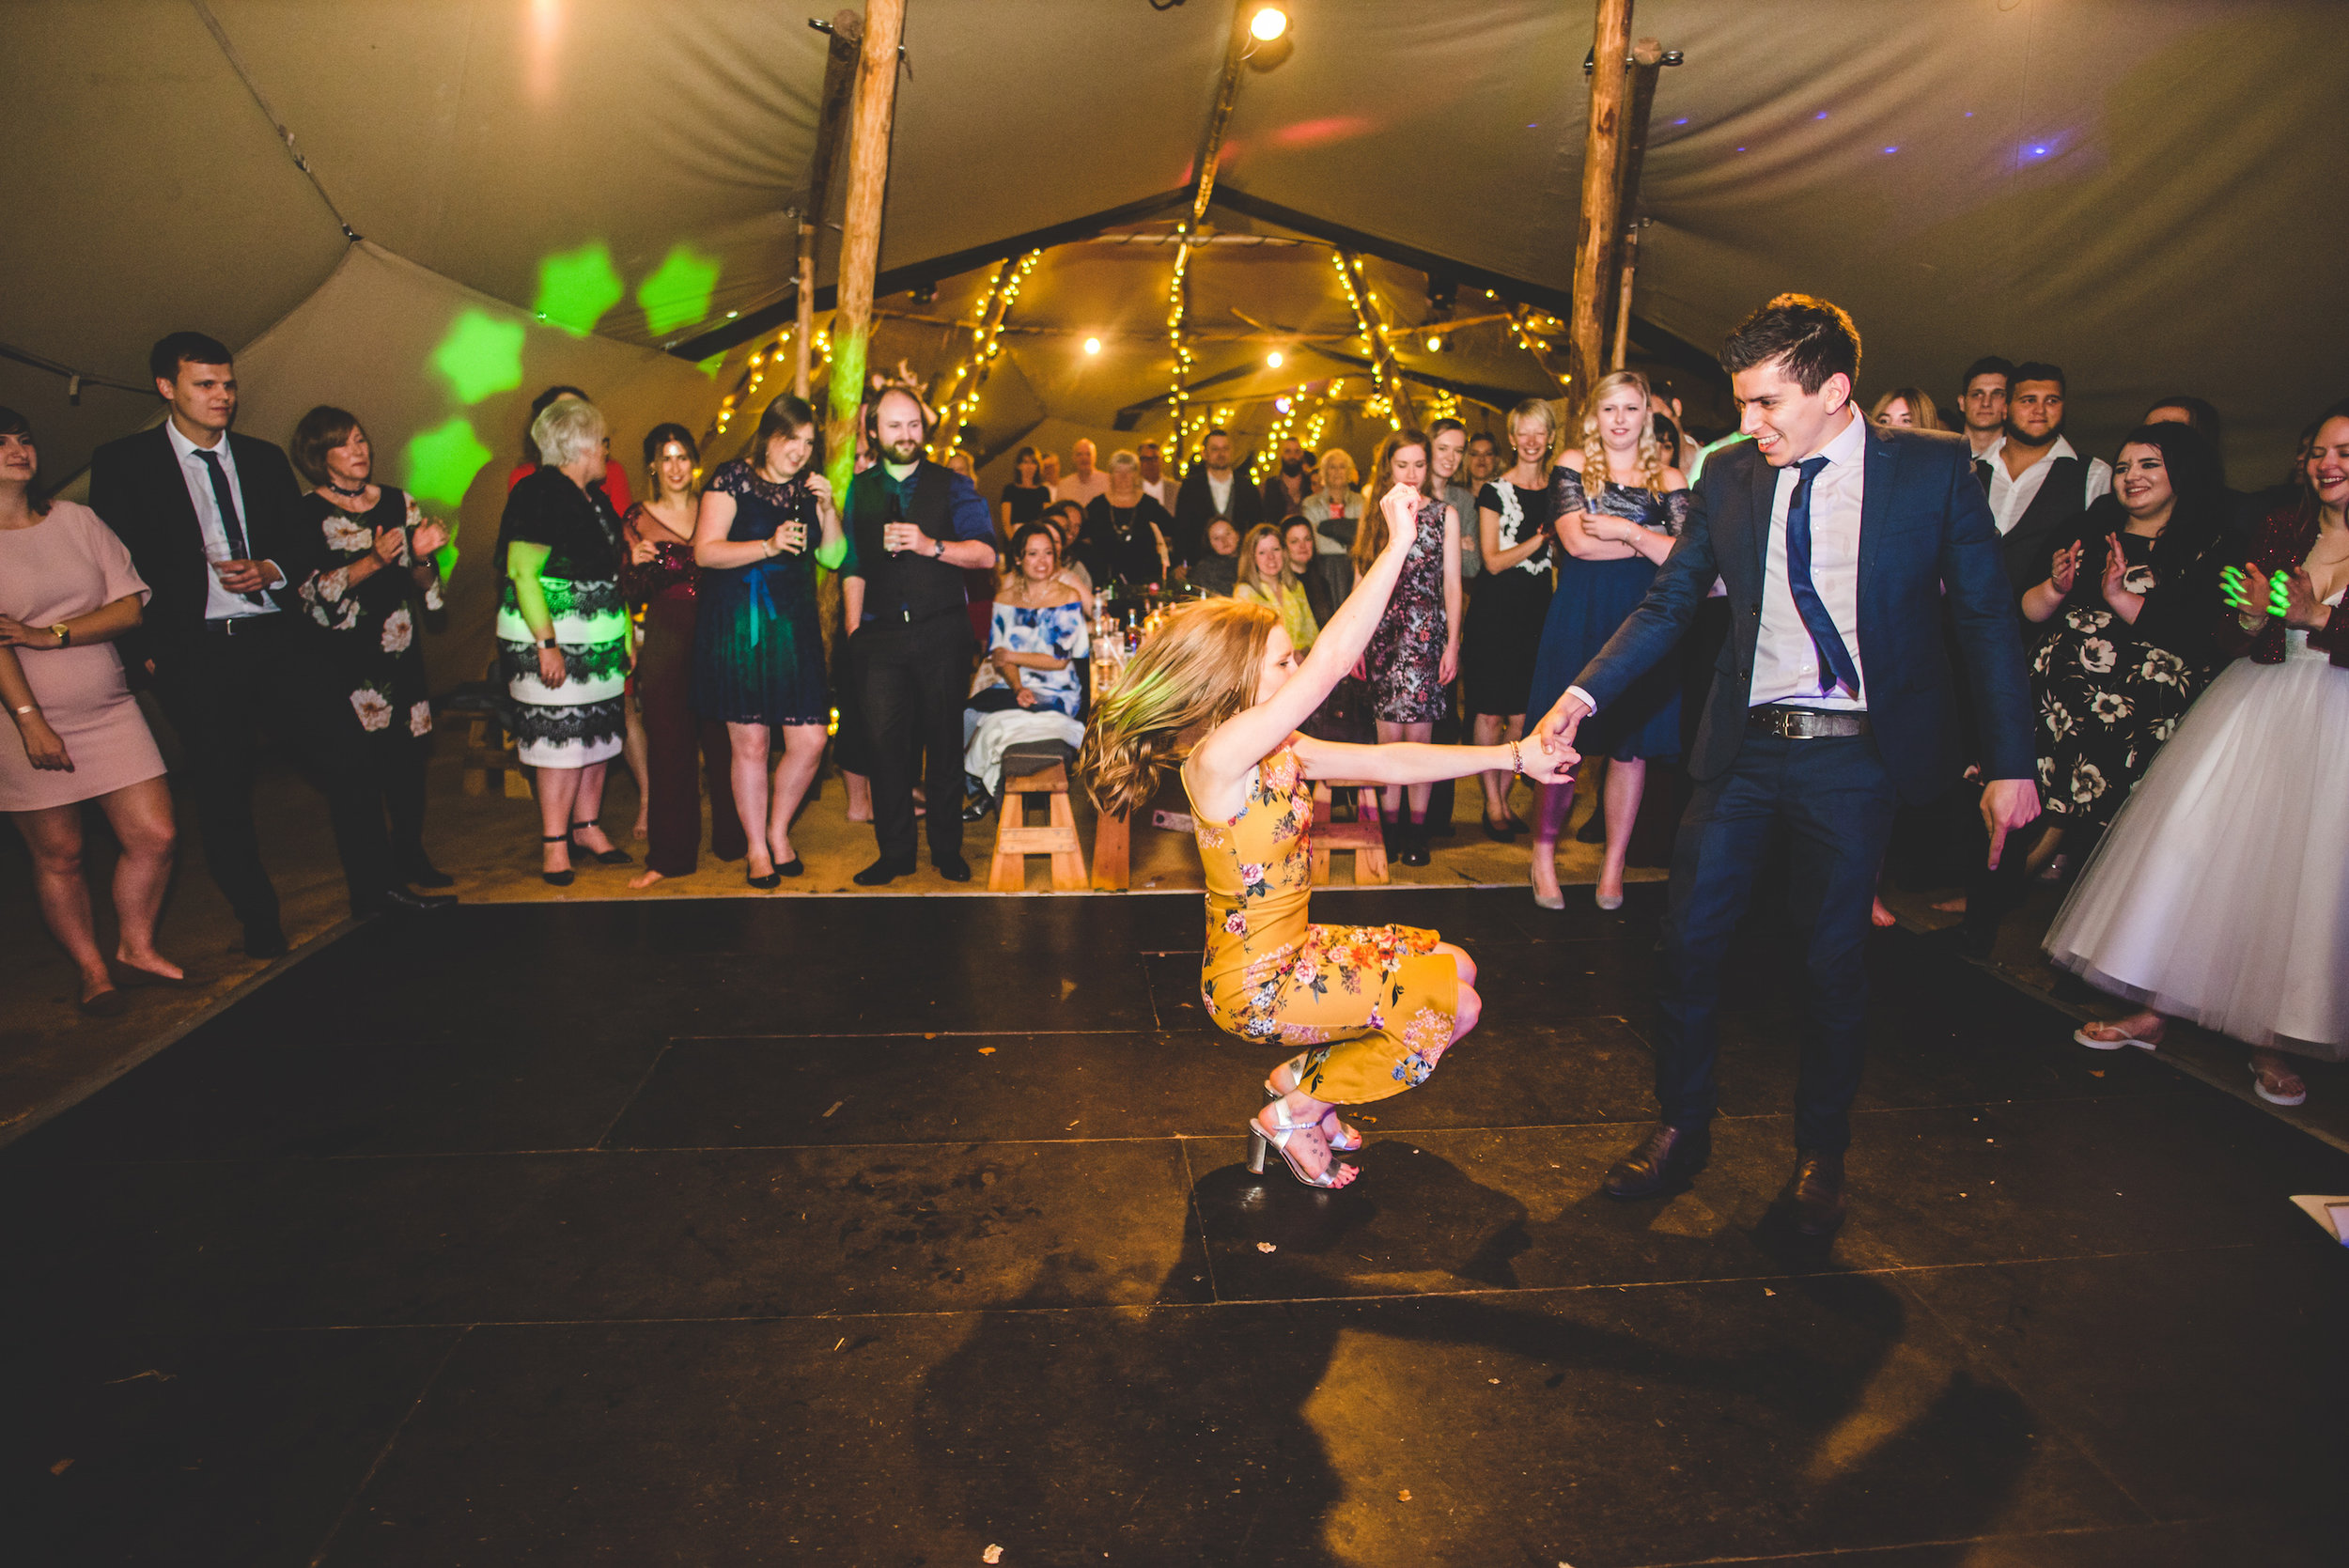 18 Tackeroo Caravan Site Woodland Weddings Staffordshire St John's House Guest Having a Dance Off.jpg